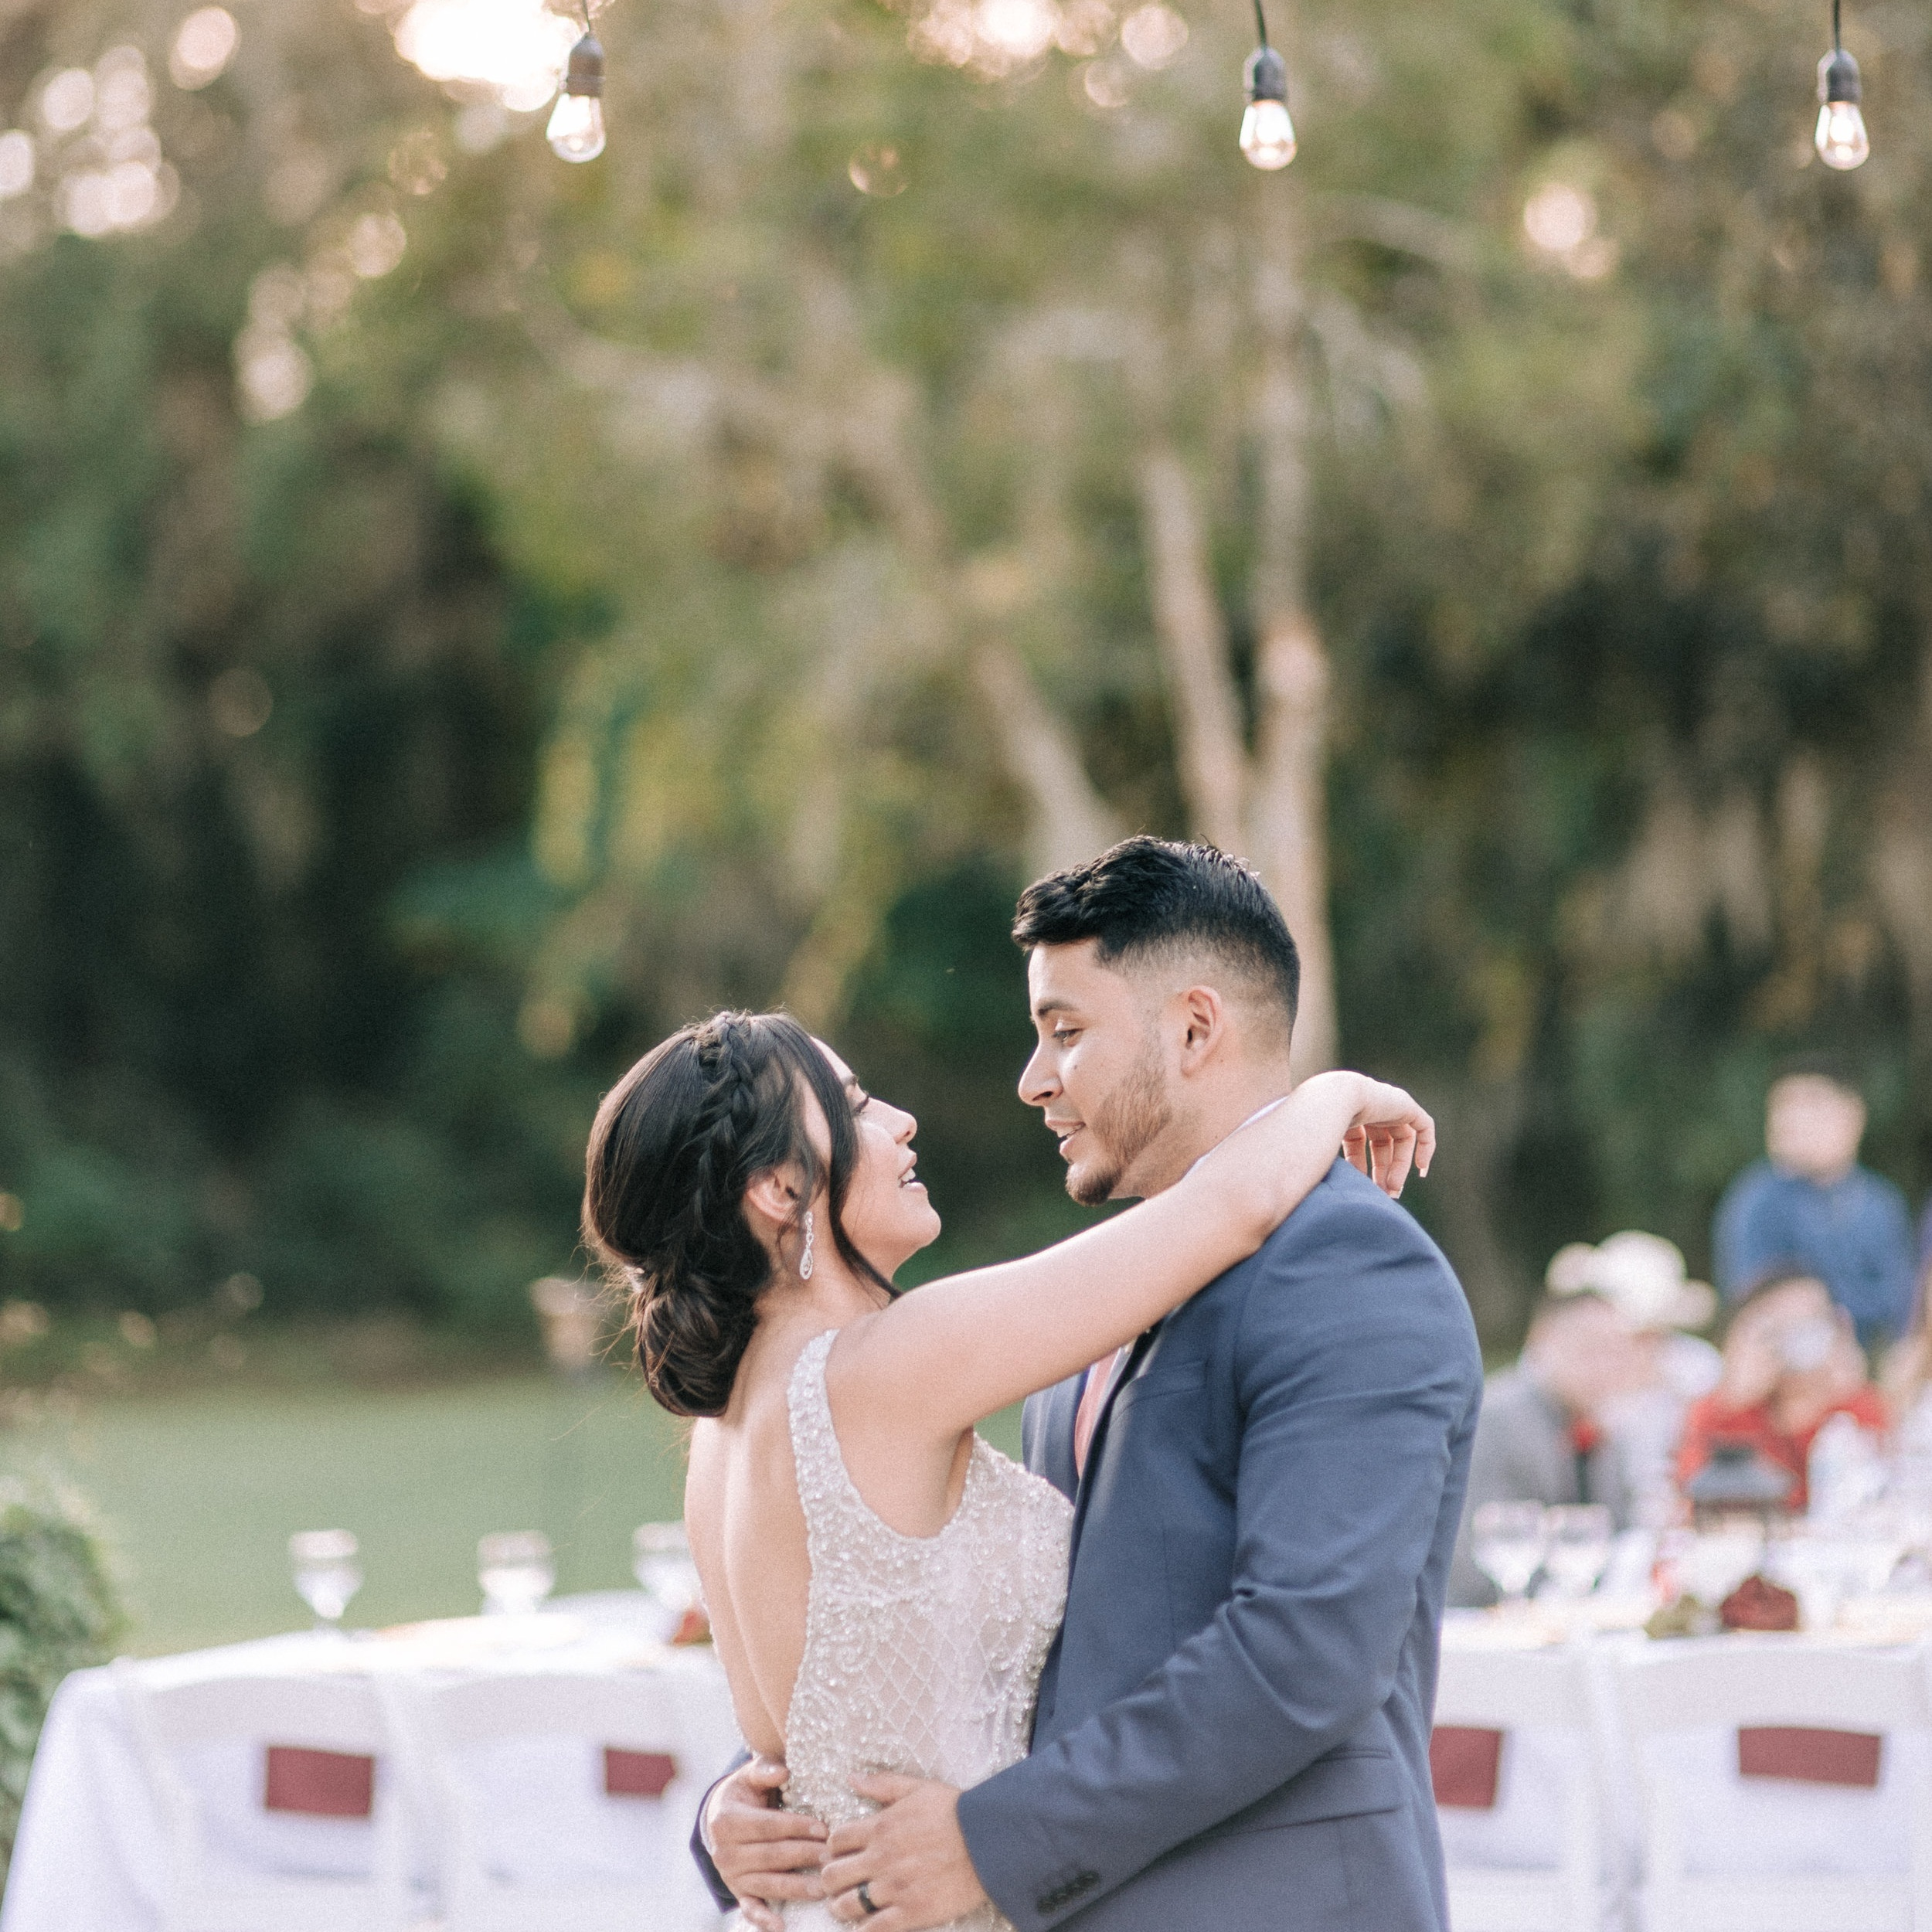 "- ""I would highly recommend working with this company, they are not only professional and skilled photographers, but very kind and sweet people to boot! I still cannot stop looking at my wedding pictures, I LOVE THEM SO MUCH!!!""-Allison"